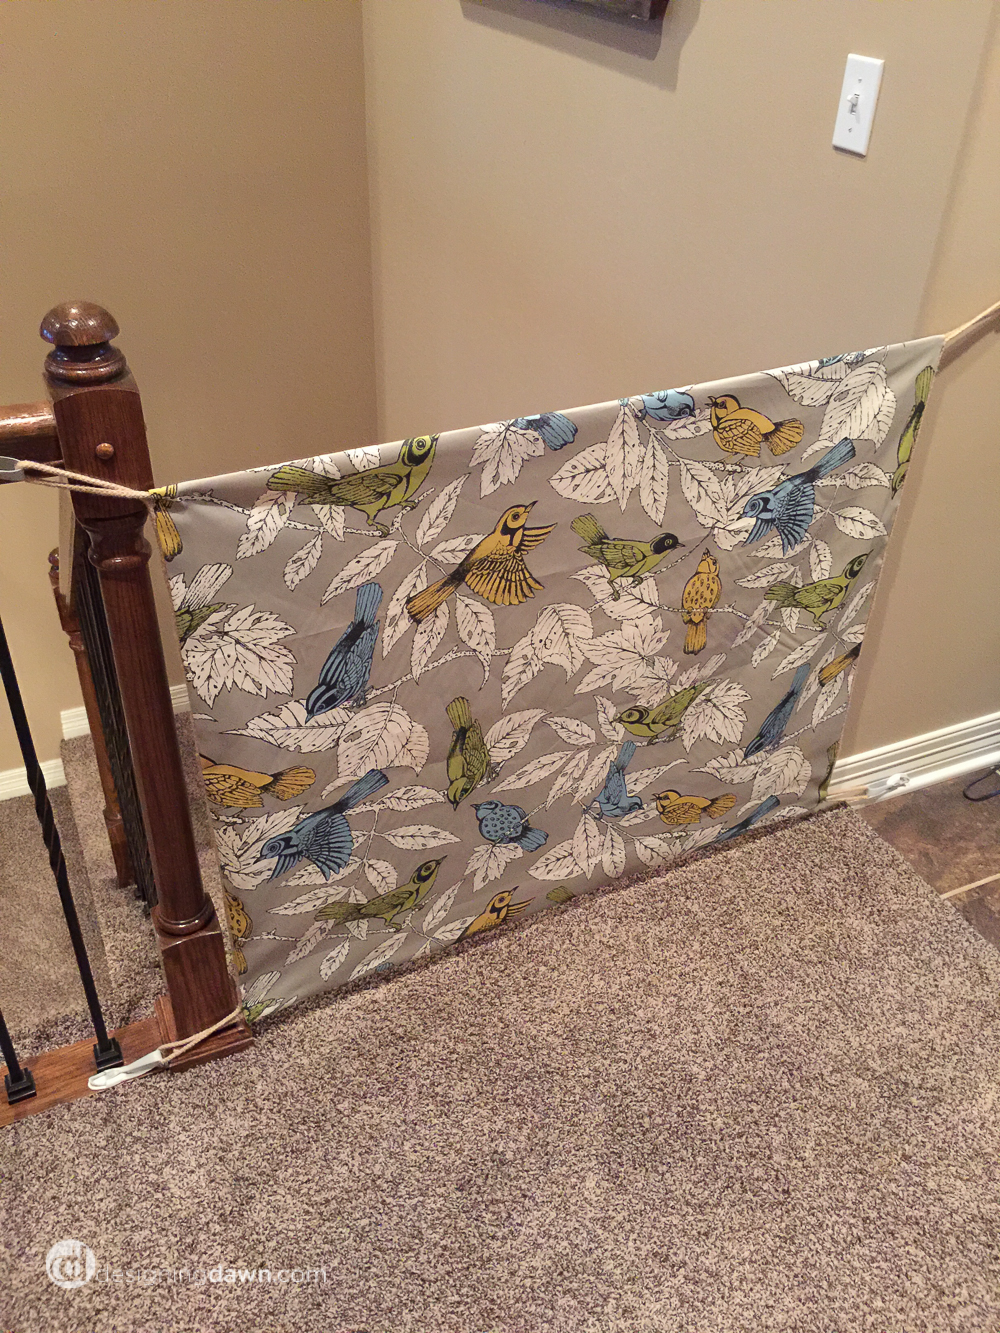 DIY Fabric Baby Gate from DesigningDawn.com-2